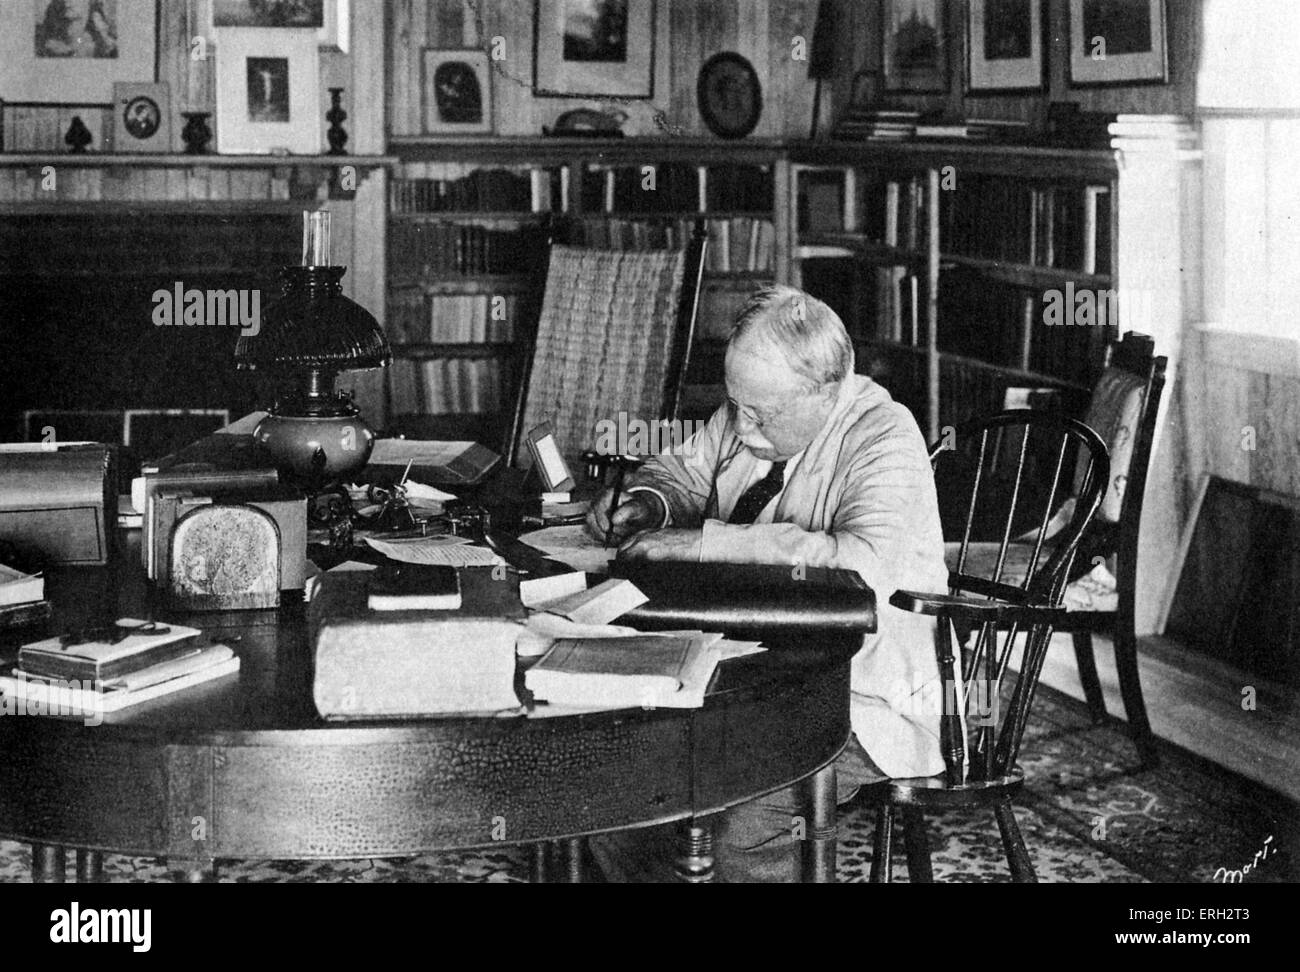 William Dean Howells writing at his desk at home, 225 Beacon Street, Martinsville, Ohio. American realist author, - Stock Image